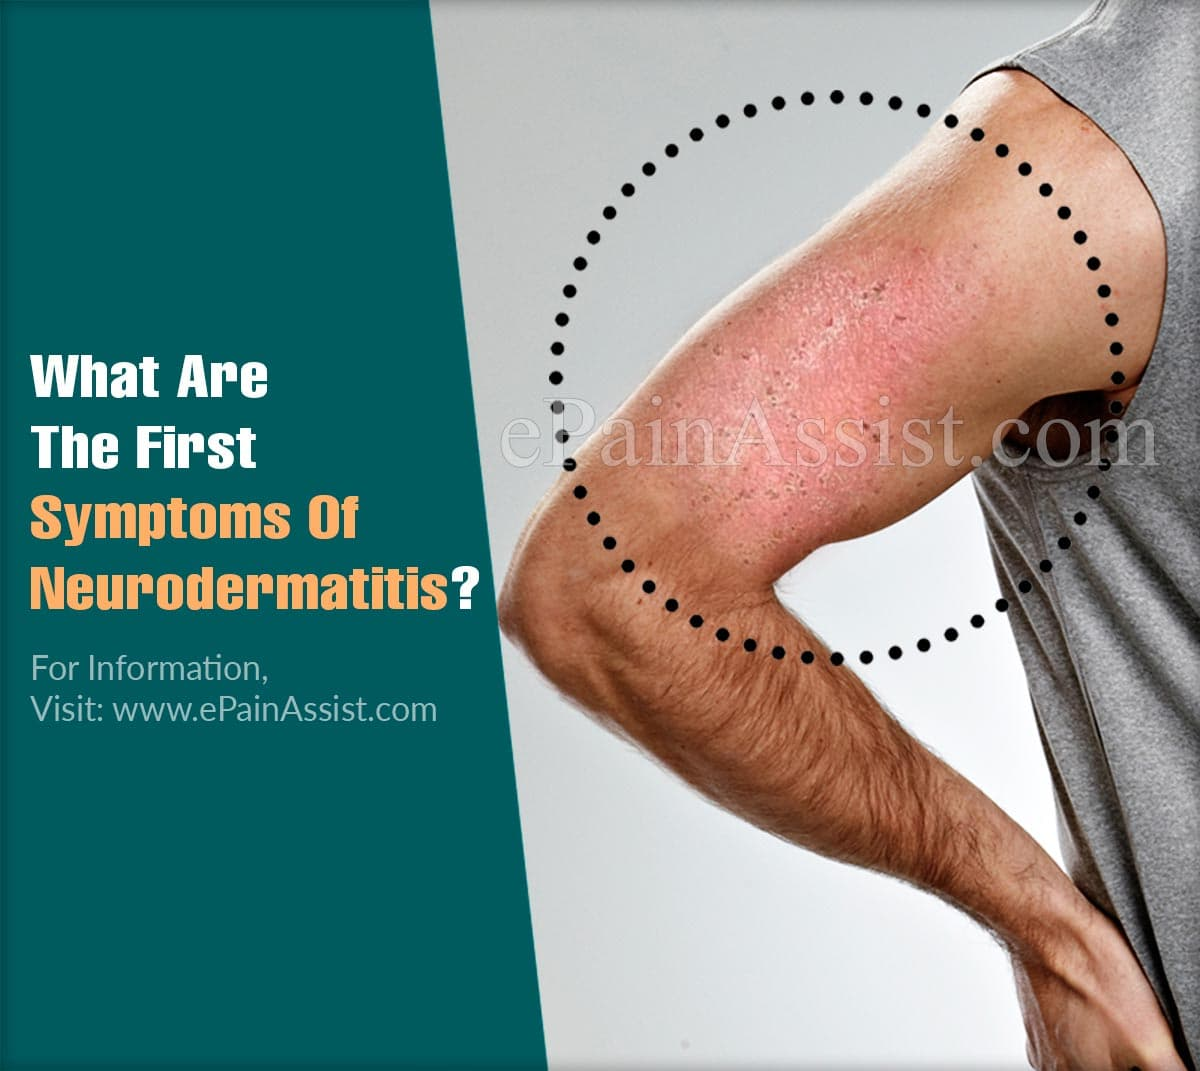 What Are The First Symptoms Of Neurodermatitis?